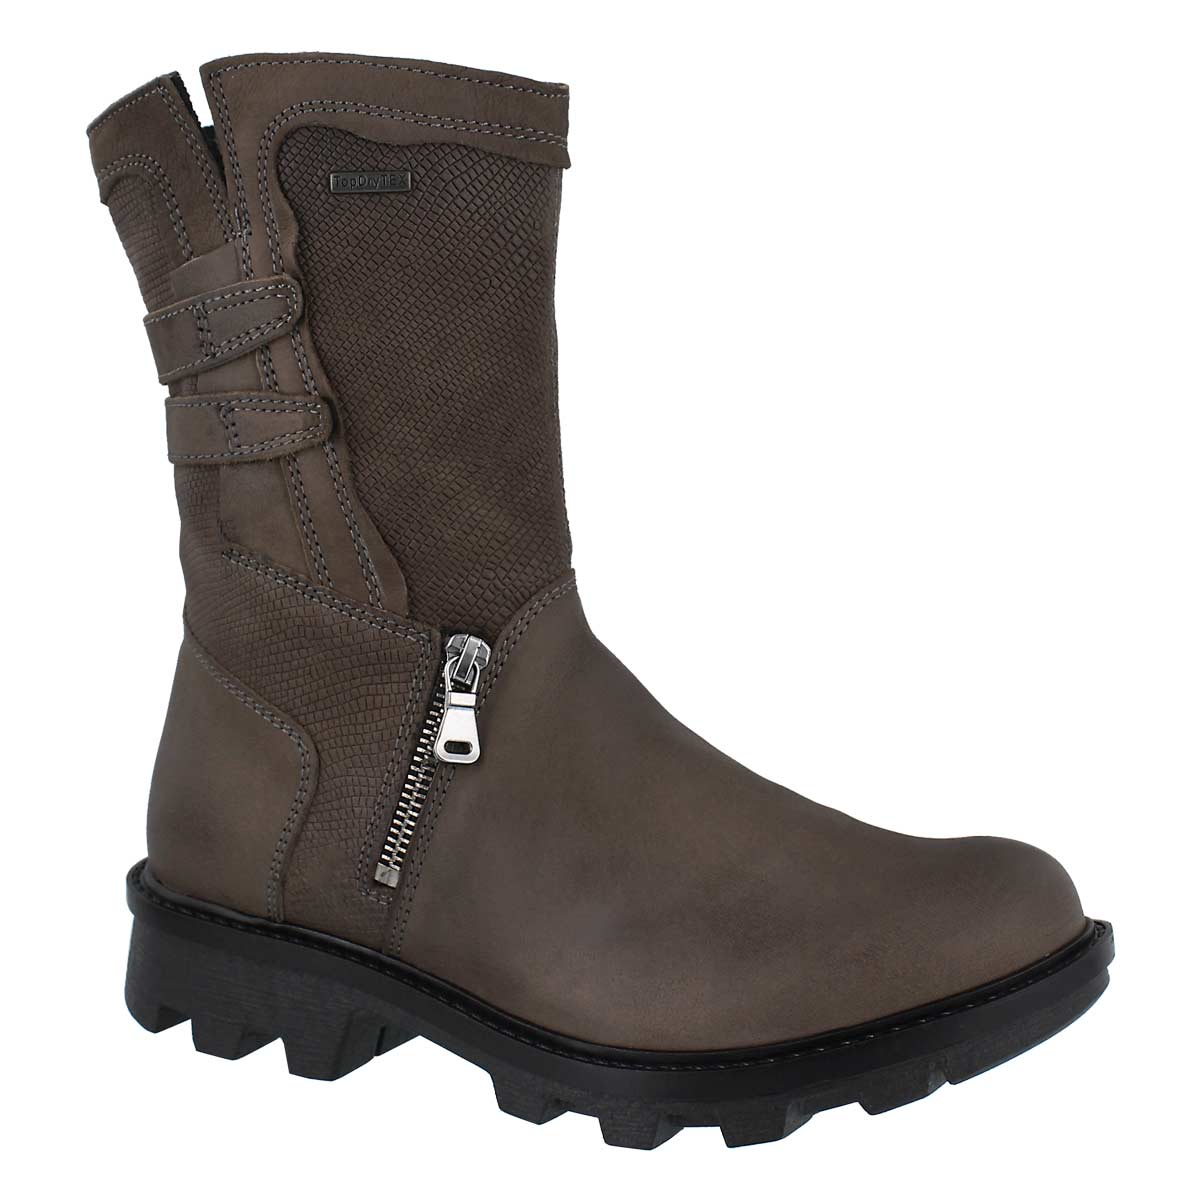 Women's MARILYN 15 anthracite midcalf boots